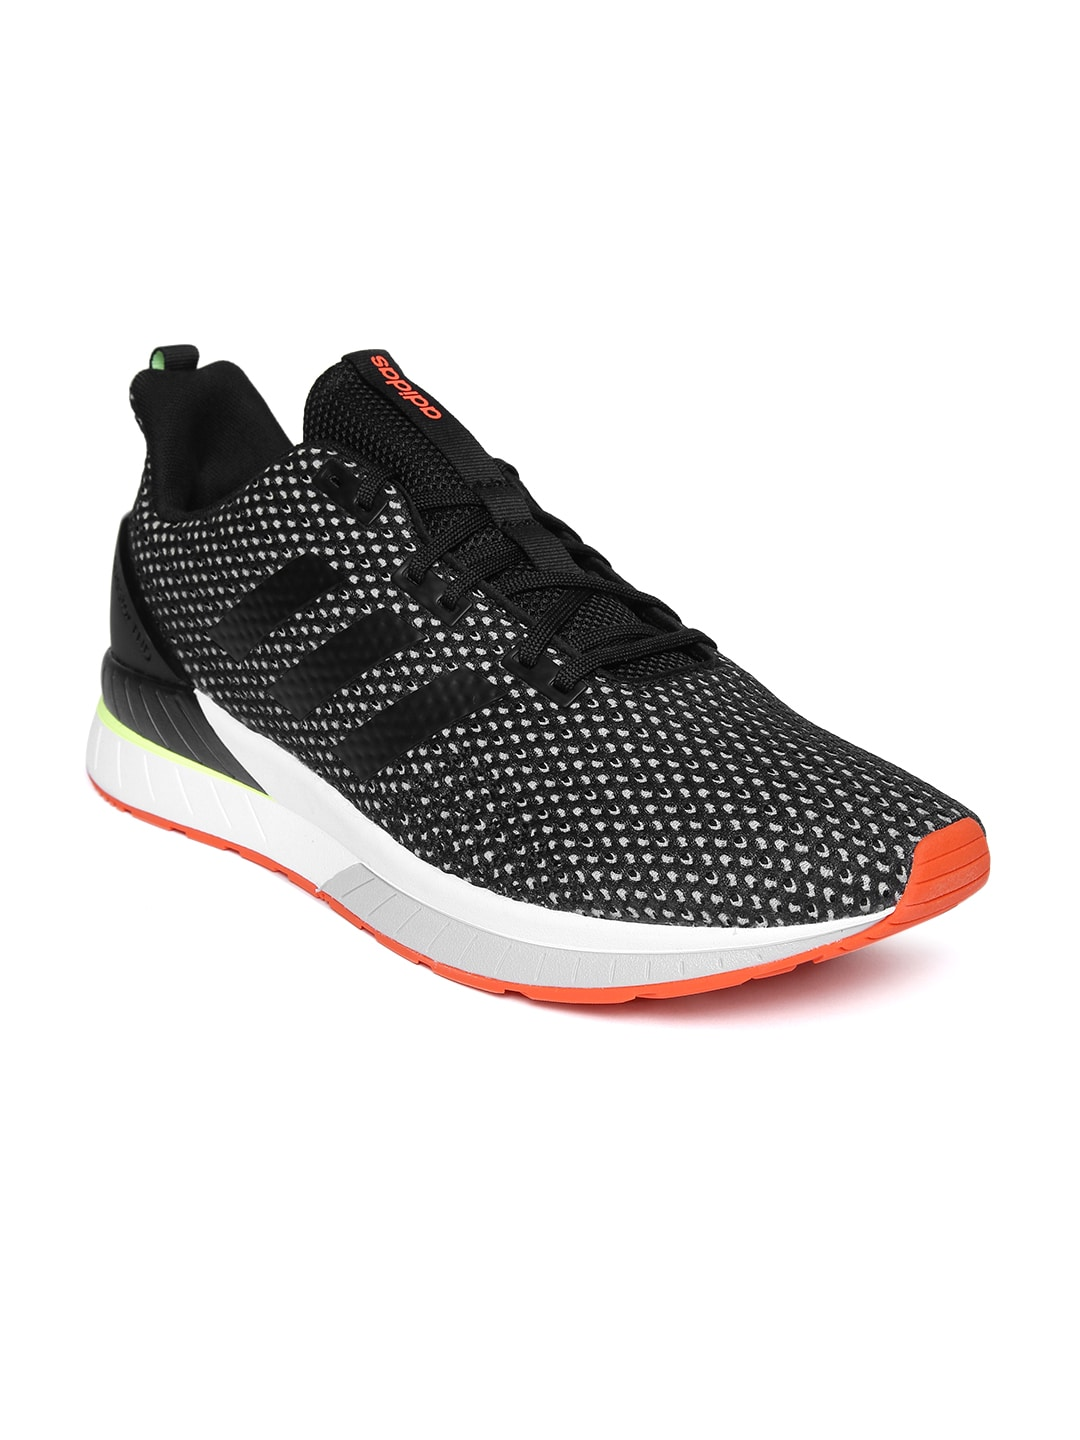 best loved 578ef c3d06 Adidas Shoes With Flat Shawl - Buy Adidas Shoes With Flat Shawl online in  India